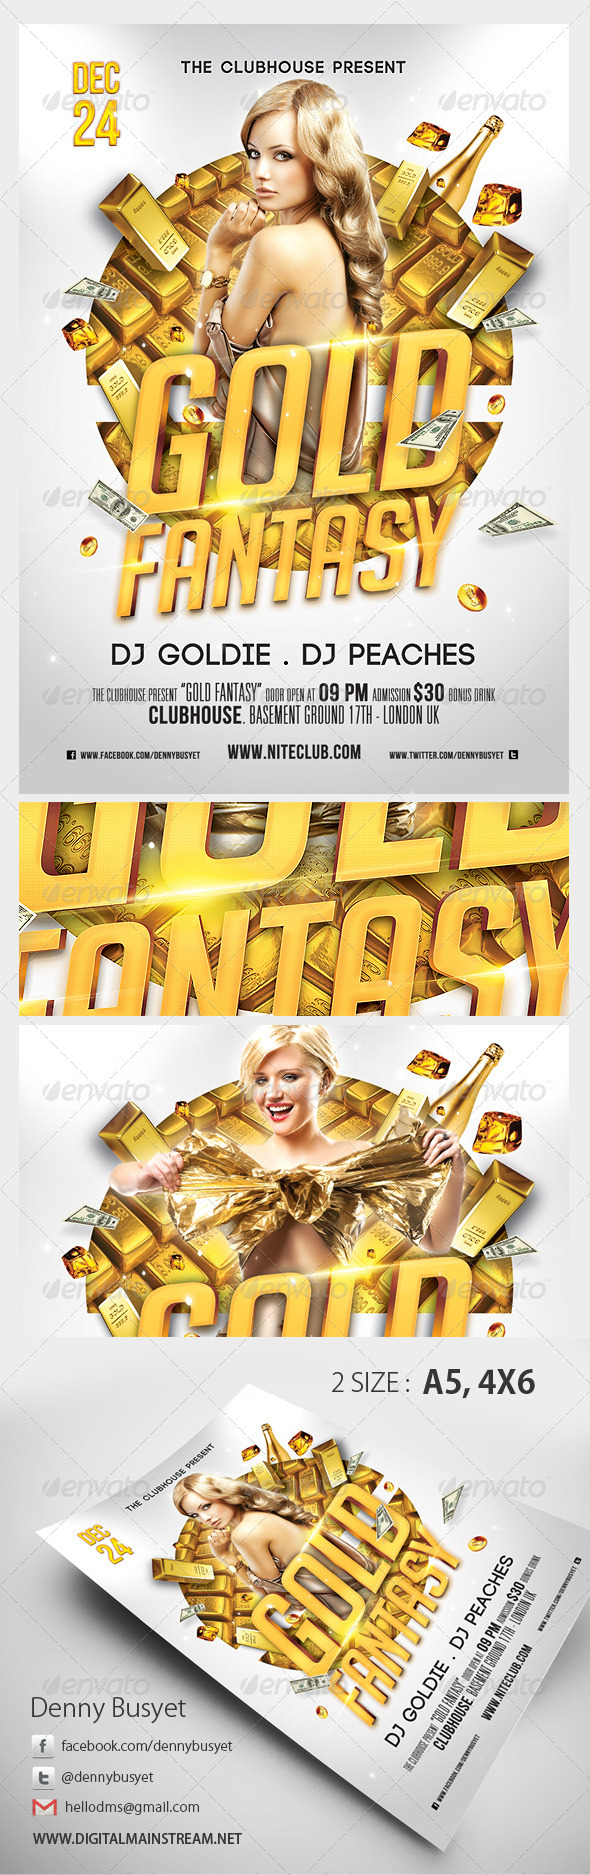 Gold Fantasy Nightclub Psd Flyer Template - Clubs & Parties Events